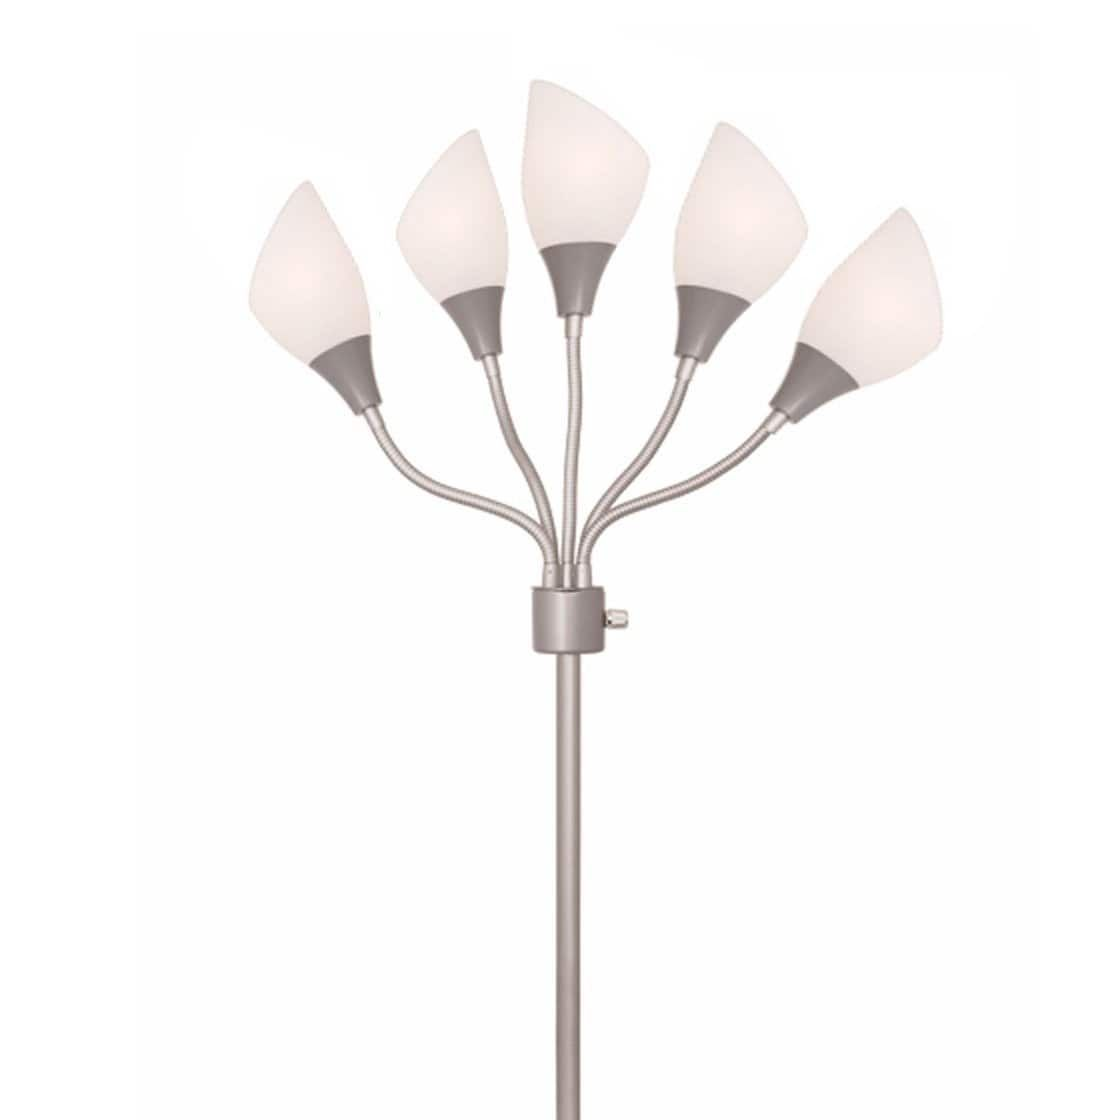 Light Accents Floor Lamp Medusa Silver Metal Kids With Multi Colored Acrylic Shades Incandescent Plastic Casual Shade